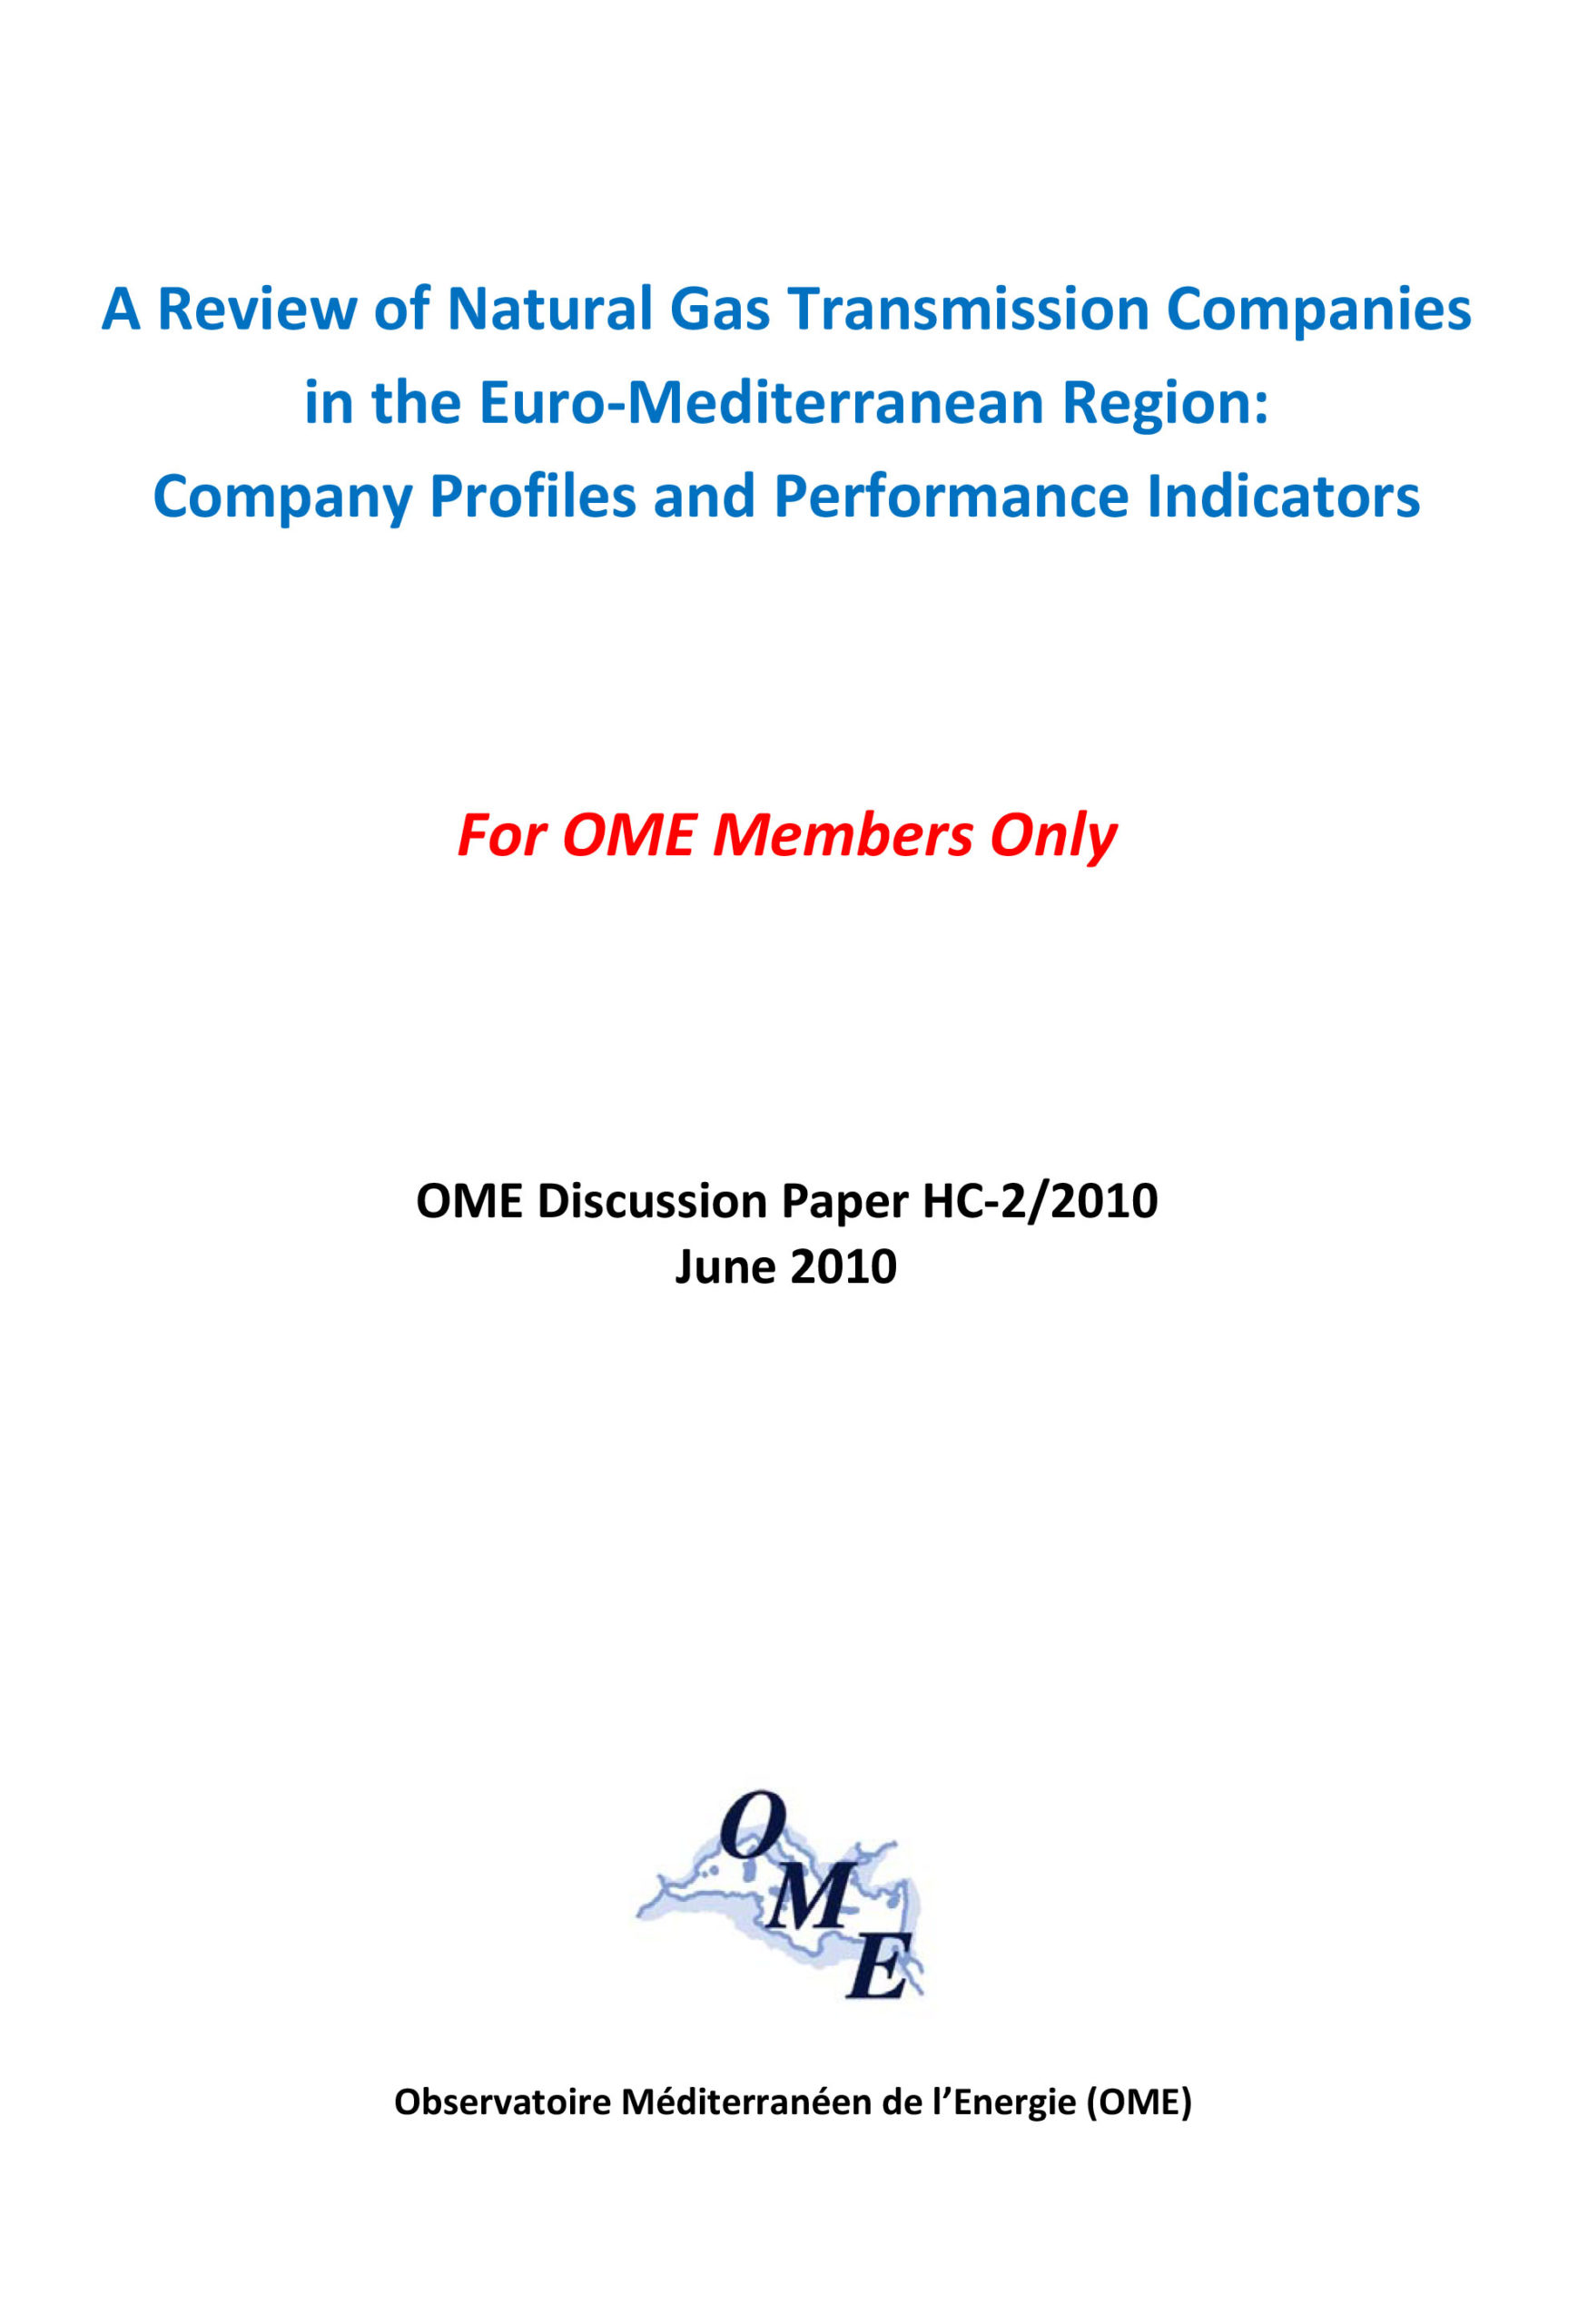 A Review of Natural Gas Transmission Companies in Euro-Mediterranean Region, June 2010